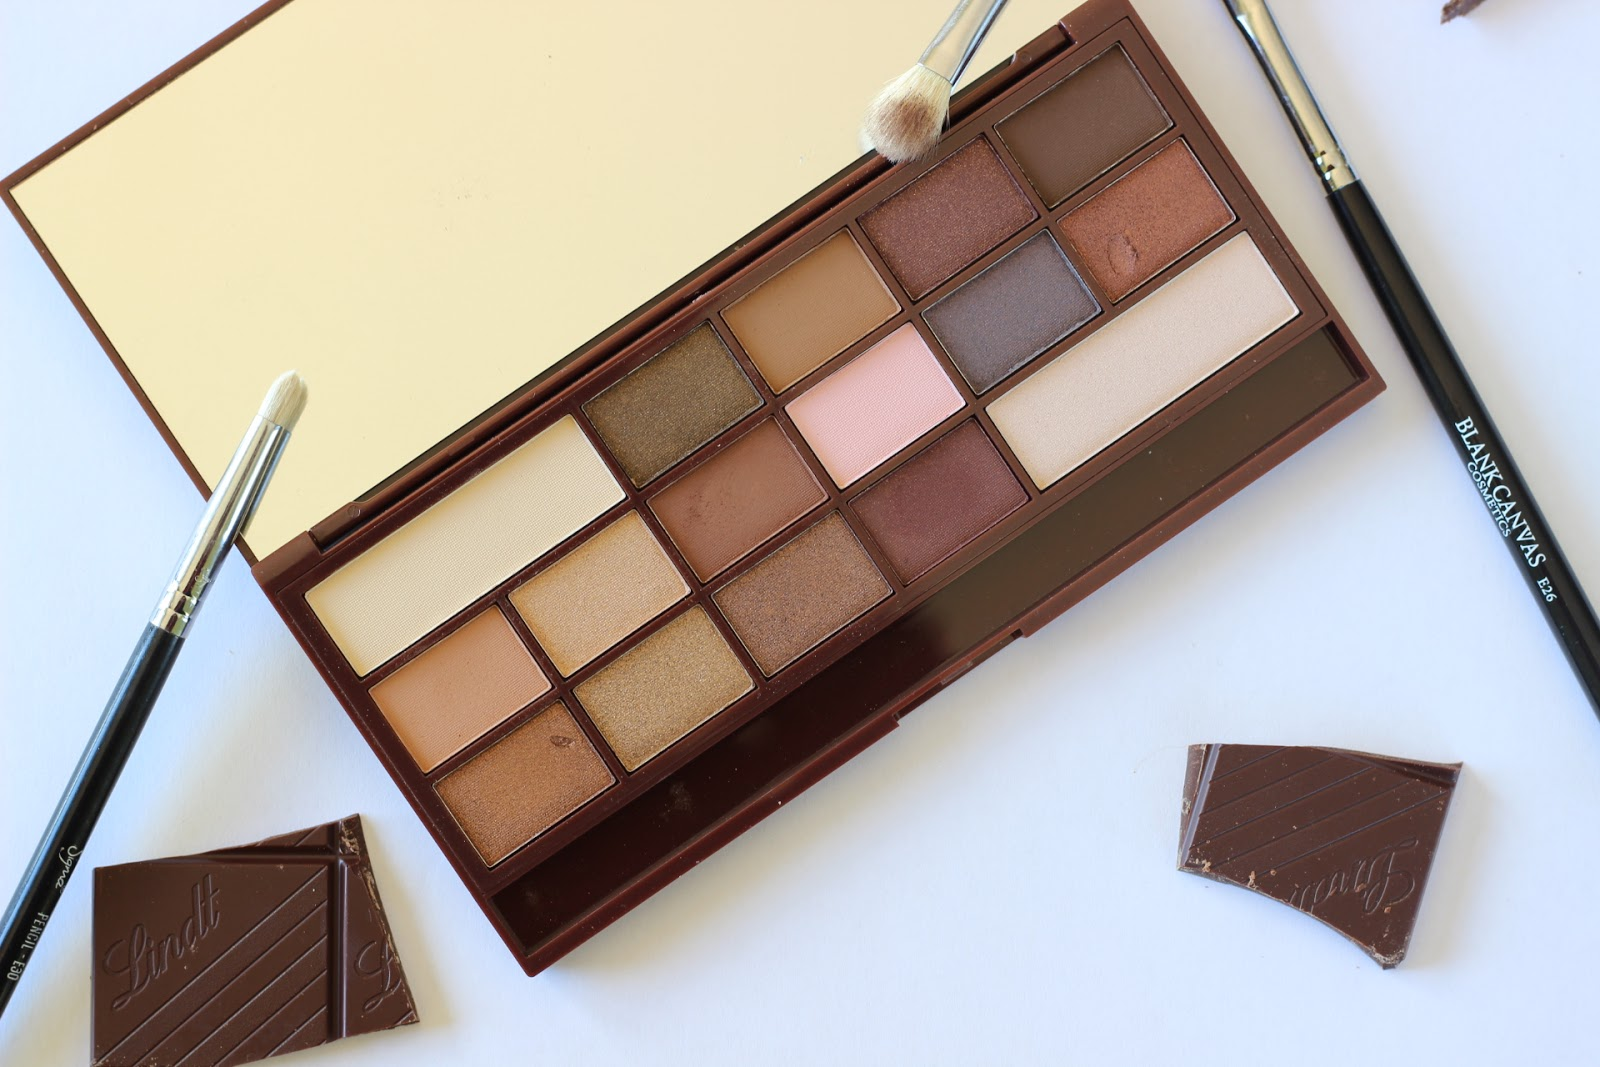 I Heart Makeup I Heart Chocolate Review & Swatches